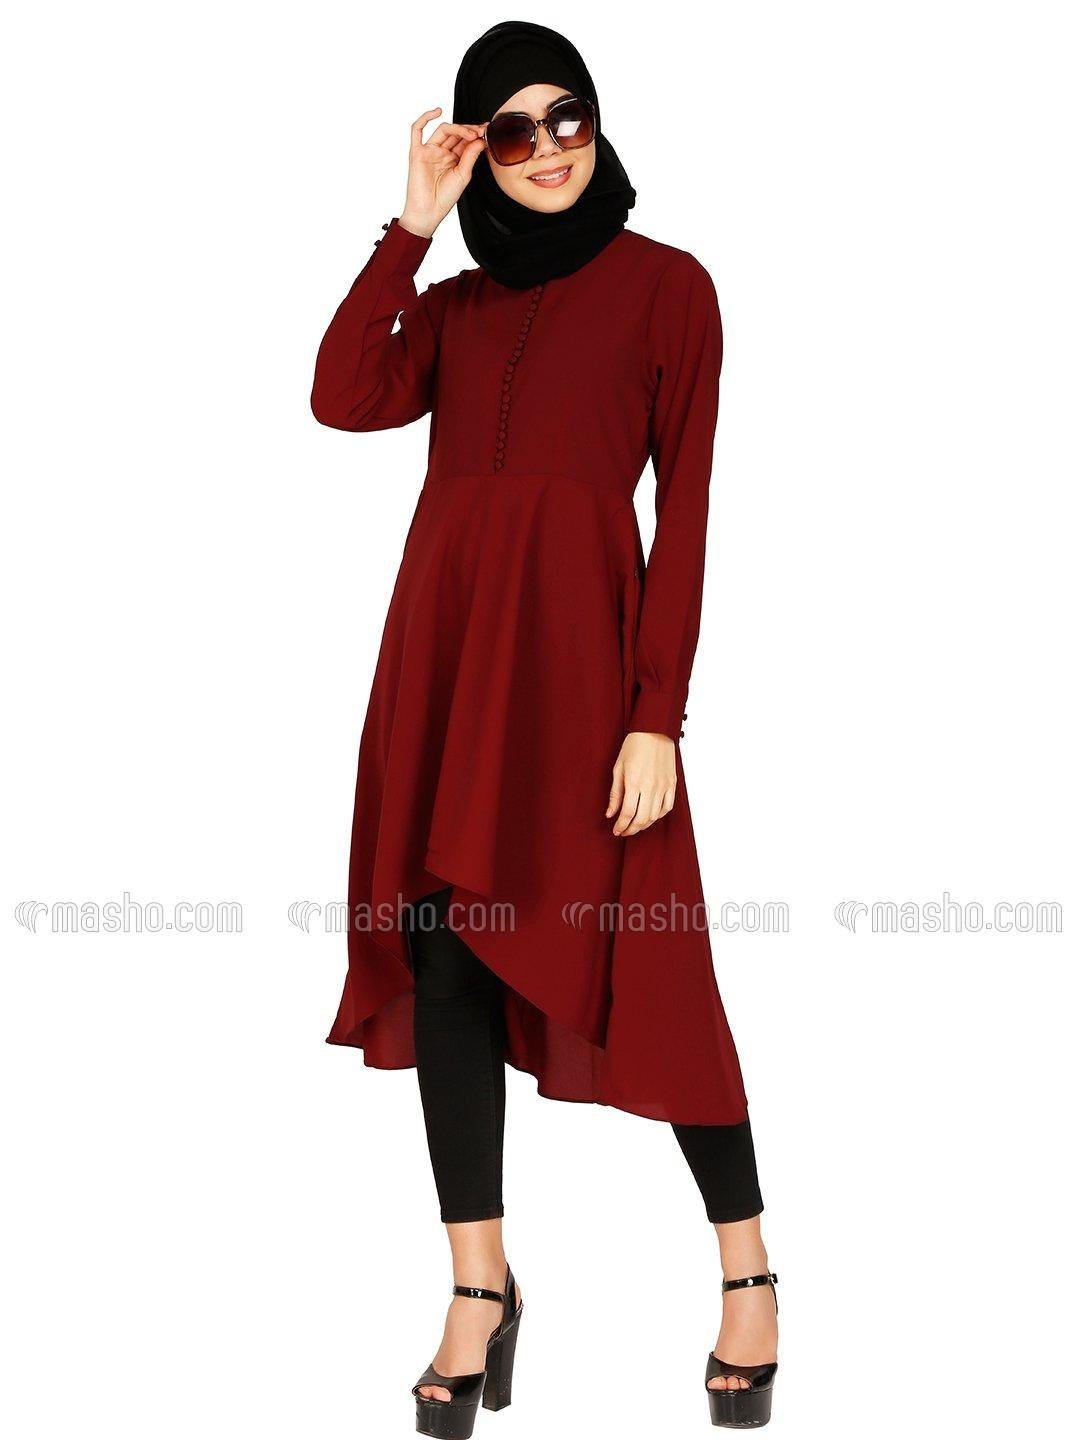 Nida Matte Kurti With Polti Buttons Neck In Maroon